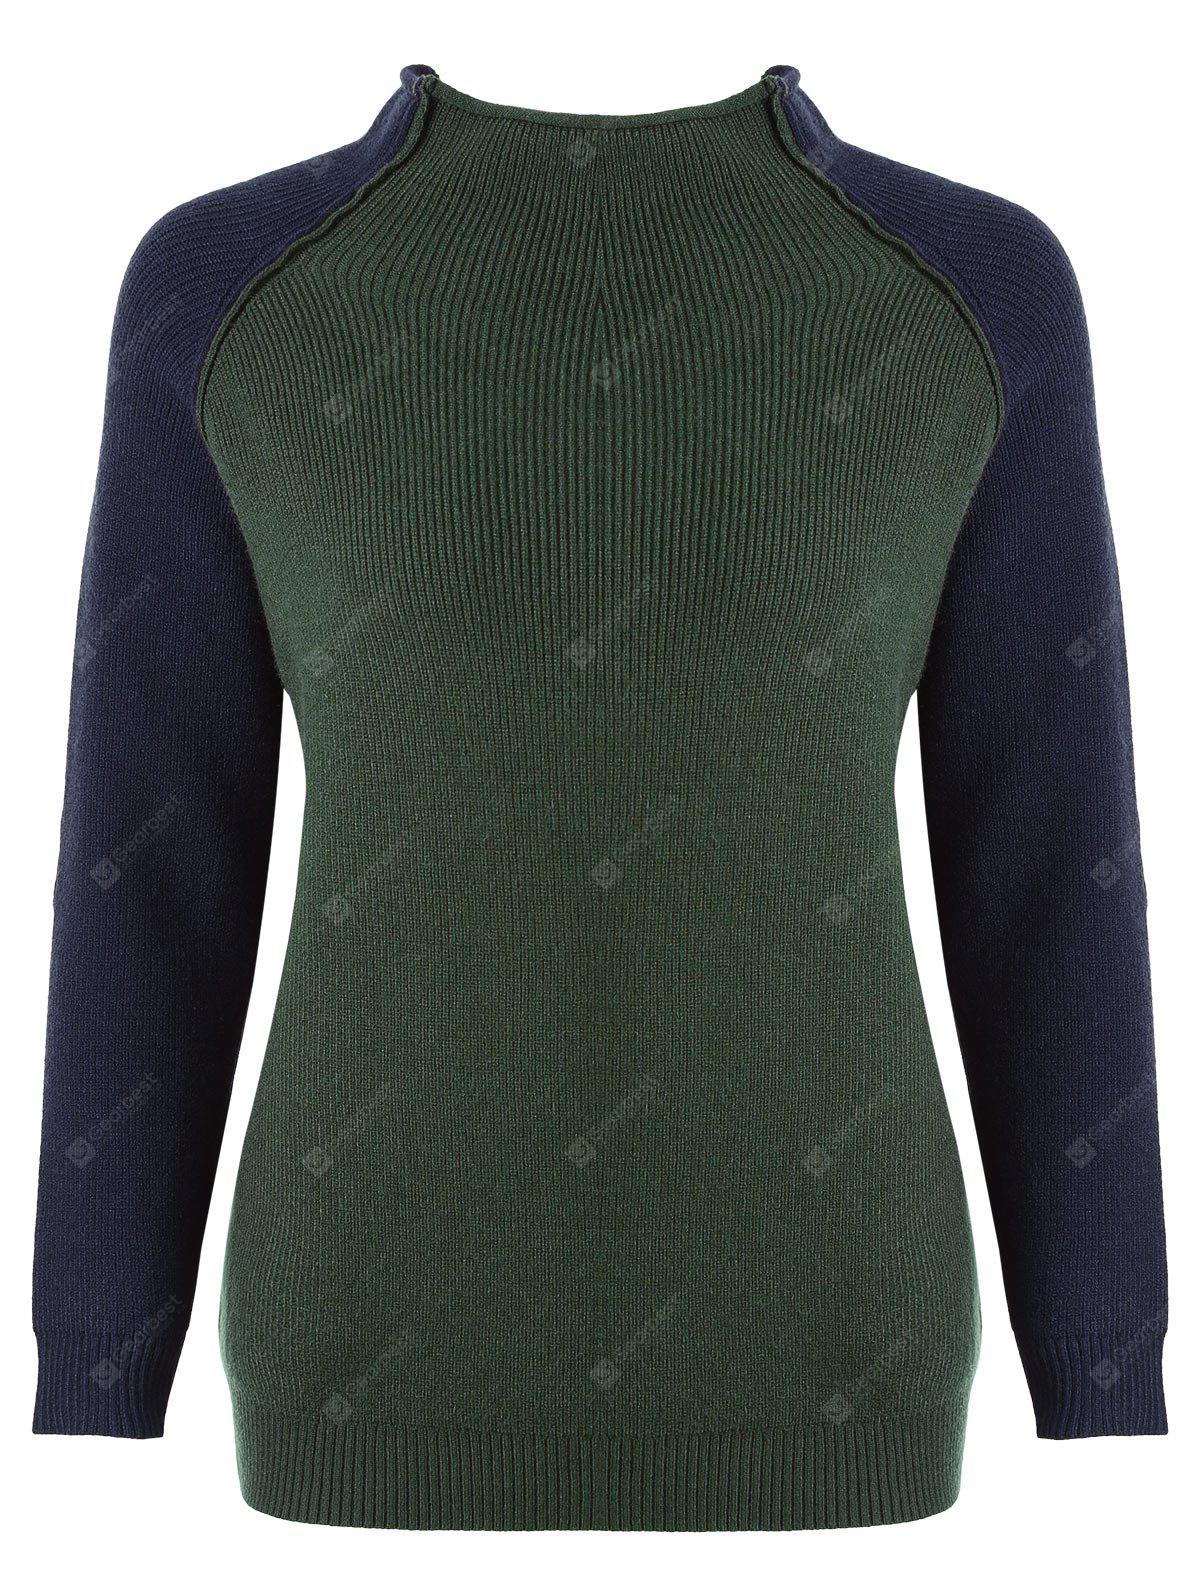 Plus Size Color Block Elbow Patches Mock Neck Sweater - ARMY GREEN